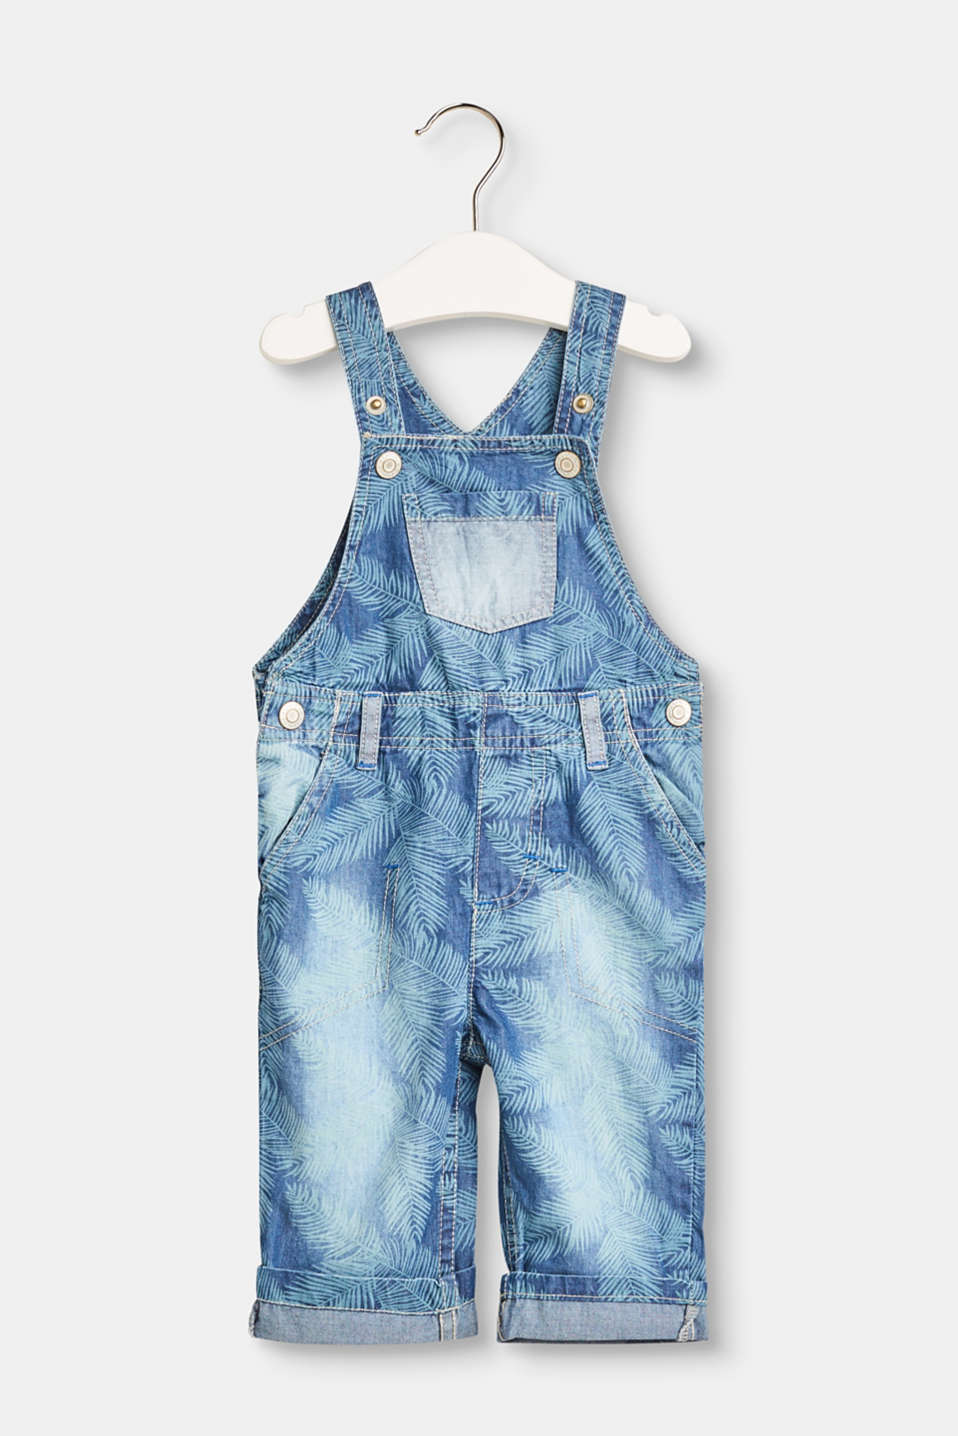 These cotton denim dungarees with a summery palm tree print and plain coloured details is particularly light and smooth!